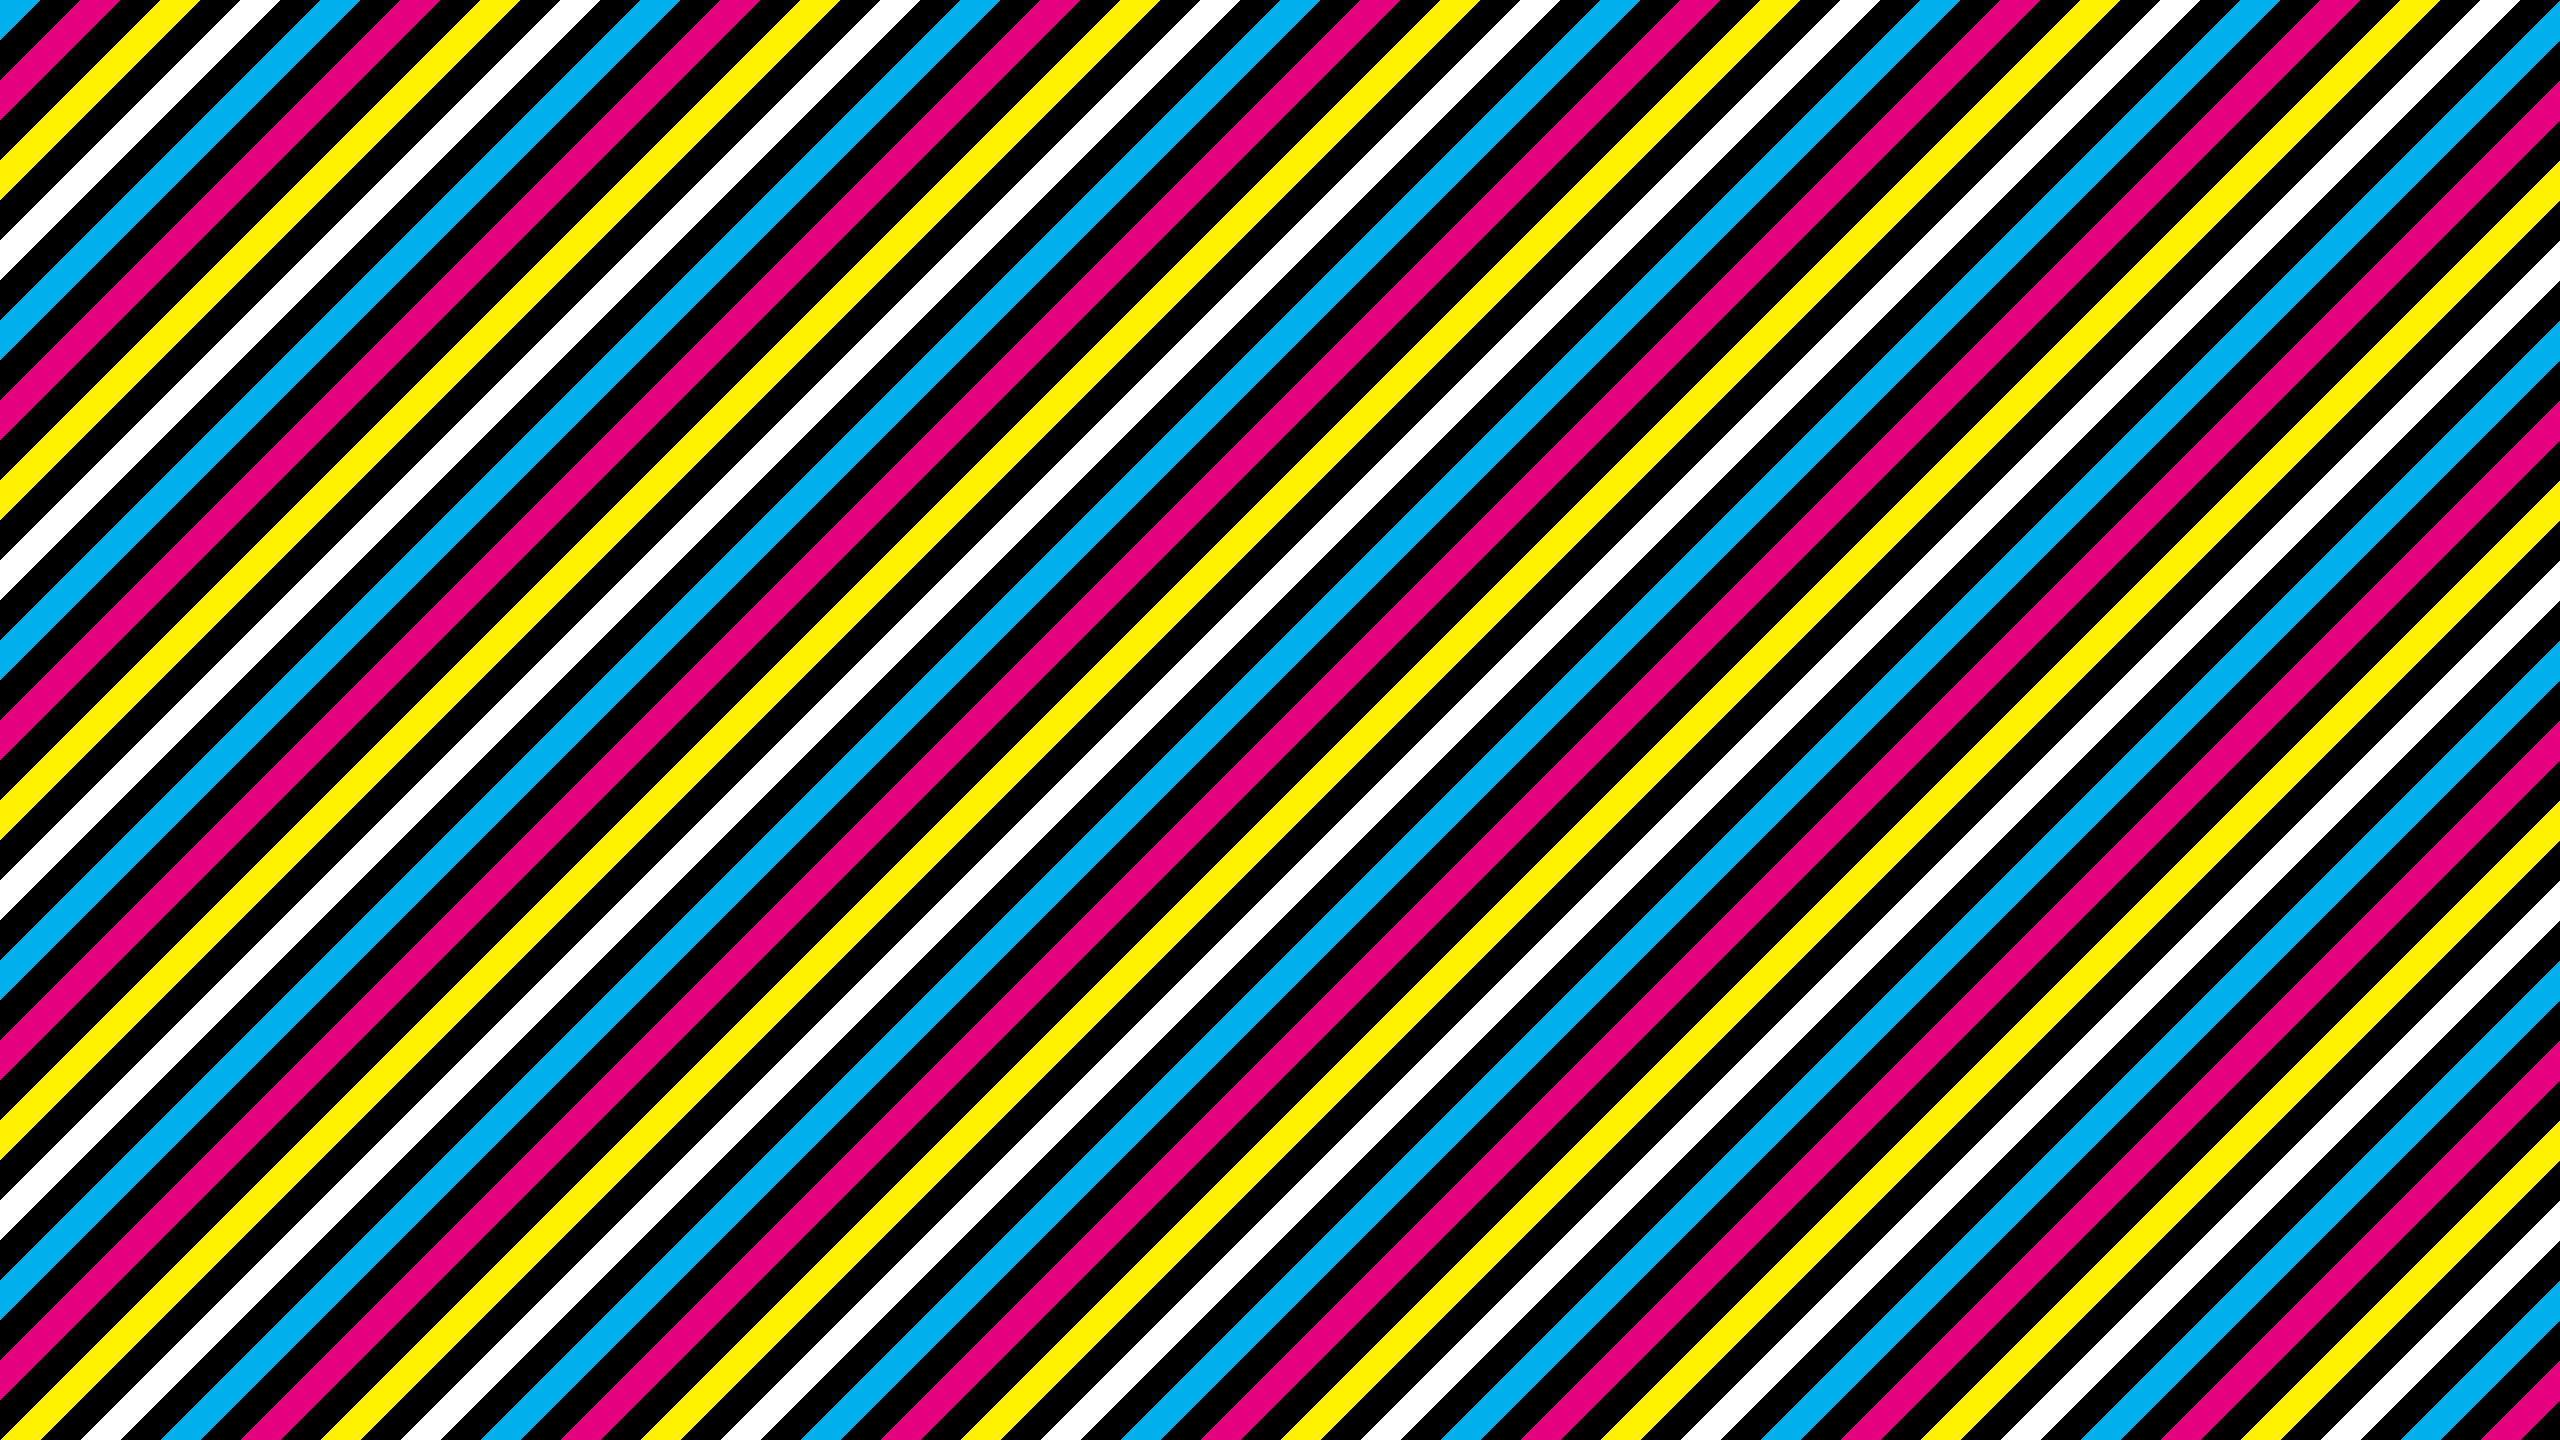 1980s wallpaper patterns - Google Search | 1980's Art and ...